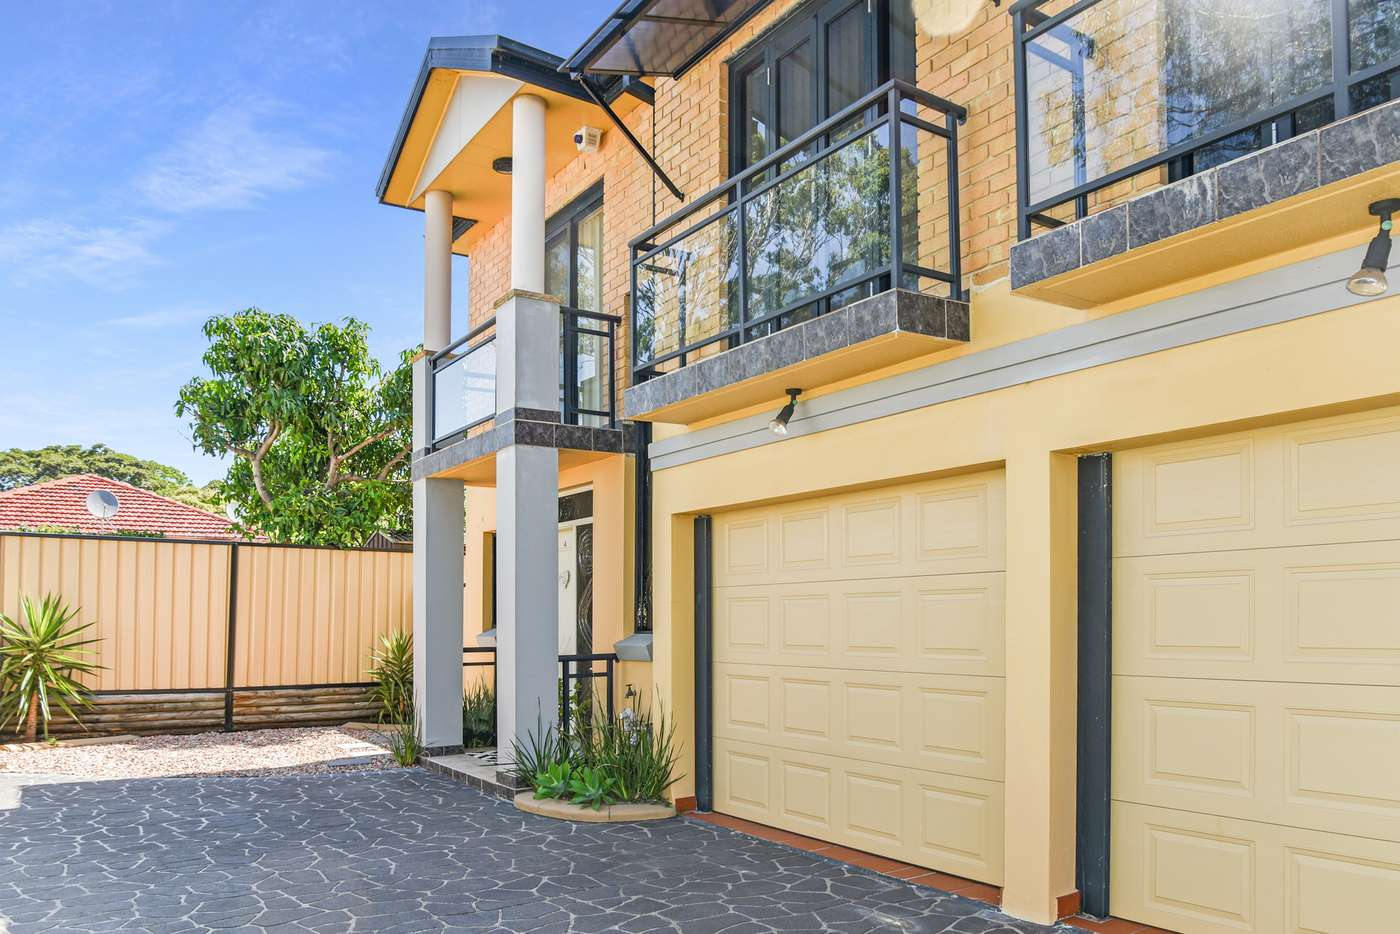 Main view of Homely townhouse listing, 4/12 Kurnell Street, Brighton-le-sands, NSW 2216